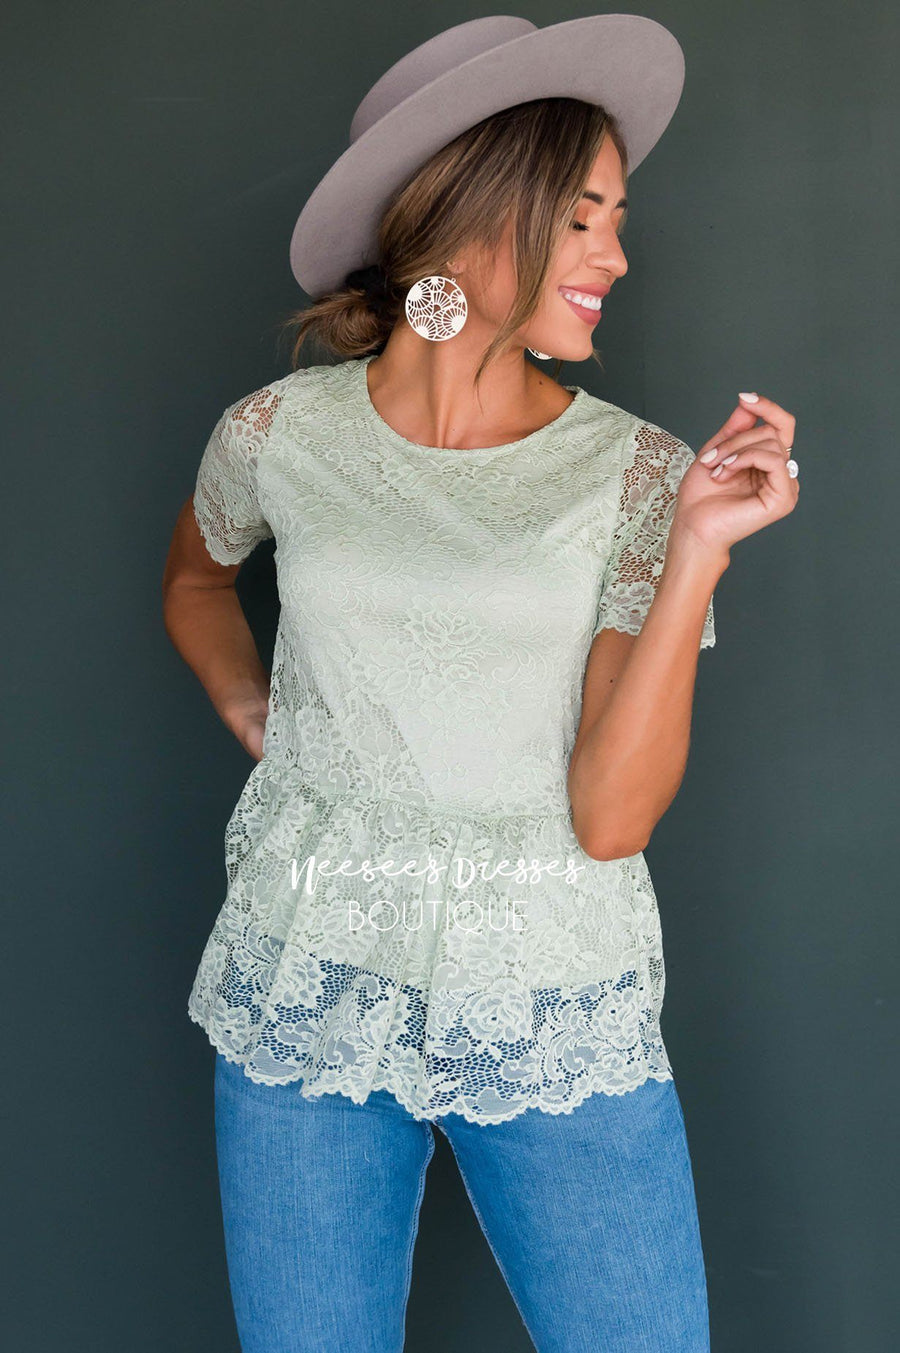 Better Days Ahead Modest Lace Top